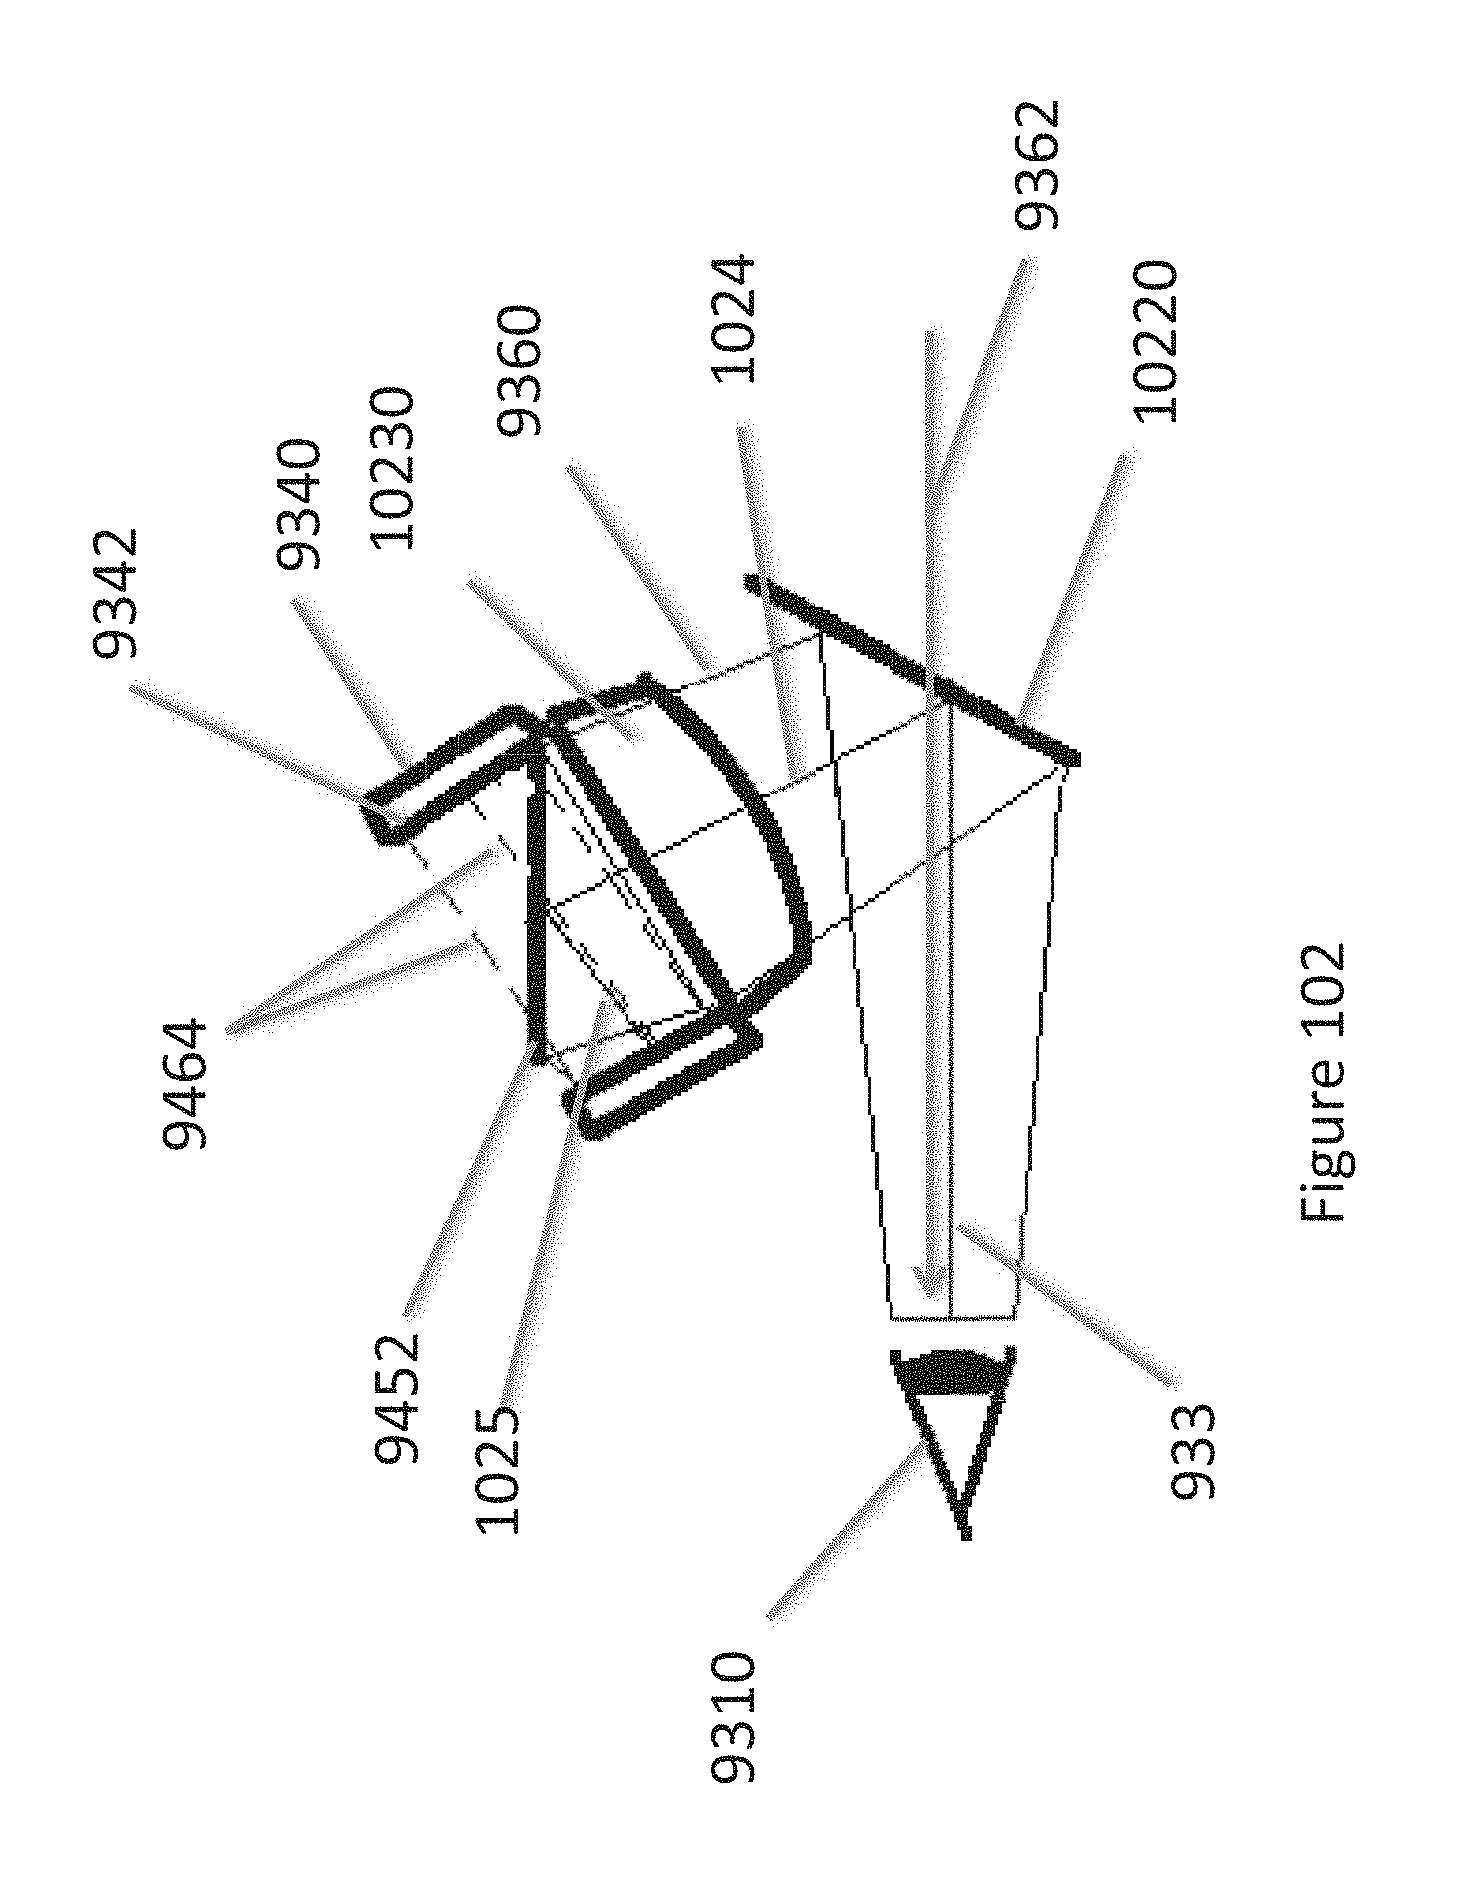 patent us 9 740 012 b2 Load Cell Wiring-Diagram Act350 patent images